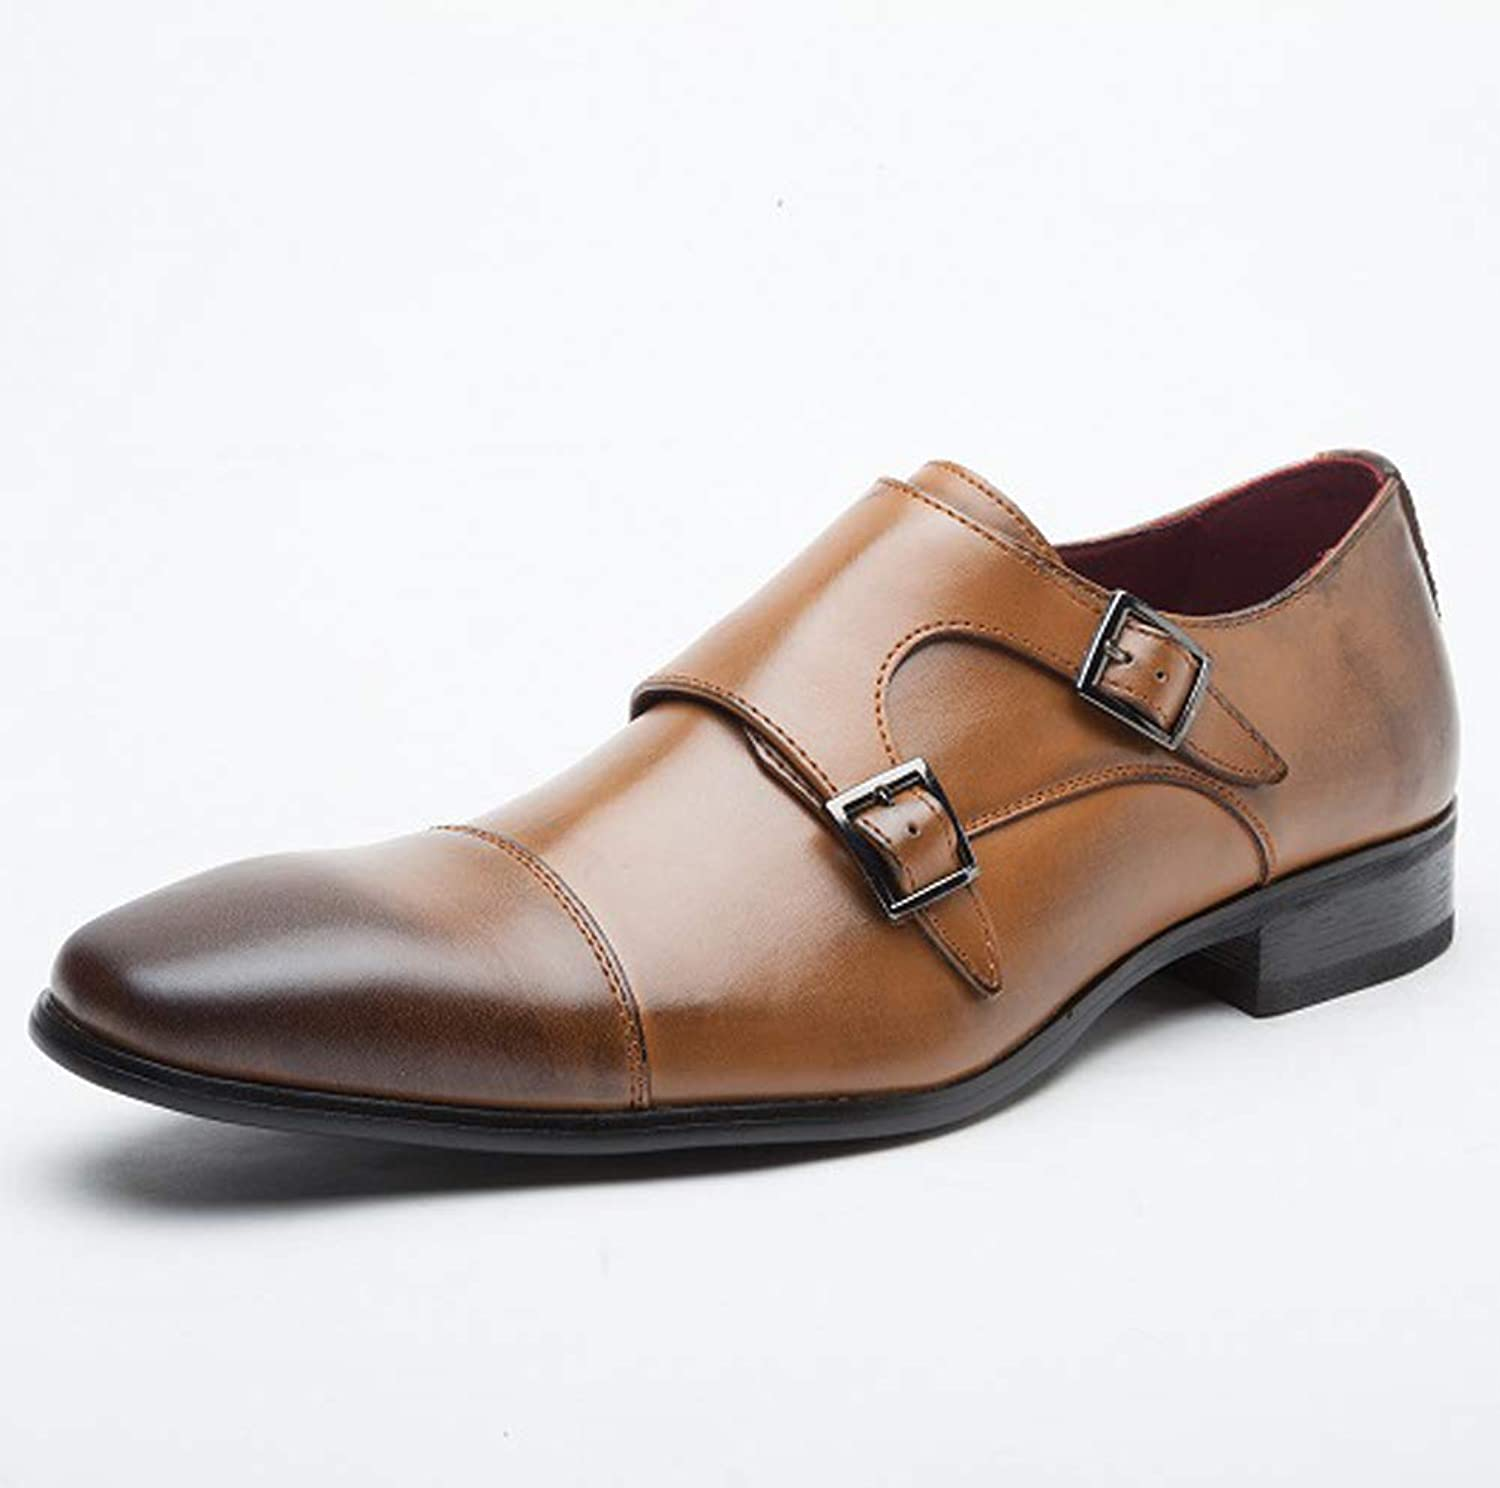 TAZAN Business shoes men's formal wear casual leather shoes leather buckle dress uniform office retro wedding party four seasons breathable wear